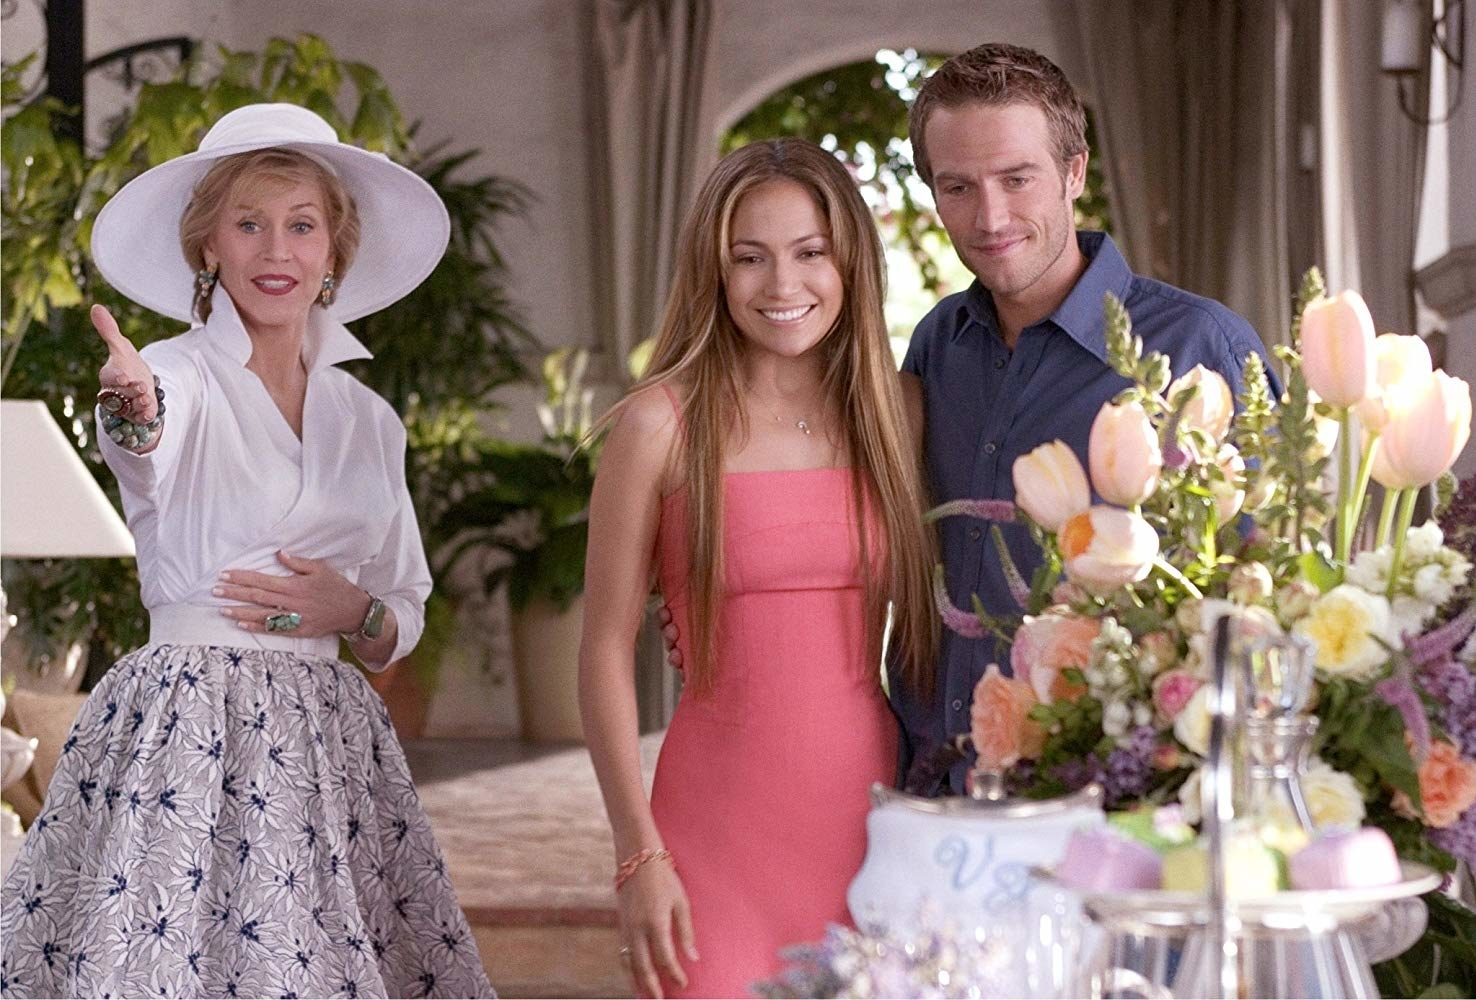 Monster-in-Law  - The premise:  The bride, played by Jennifer Lopez, thinks that her dream wedding is finally happening, until she hits a bump in the road: her mother-in-law, played by none other than Jane Fonda. Fun fact: some of the events in the movie are inspired by Fonda's own life!